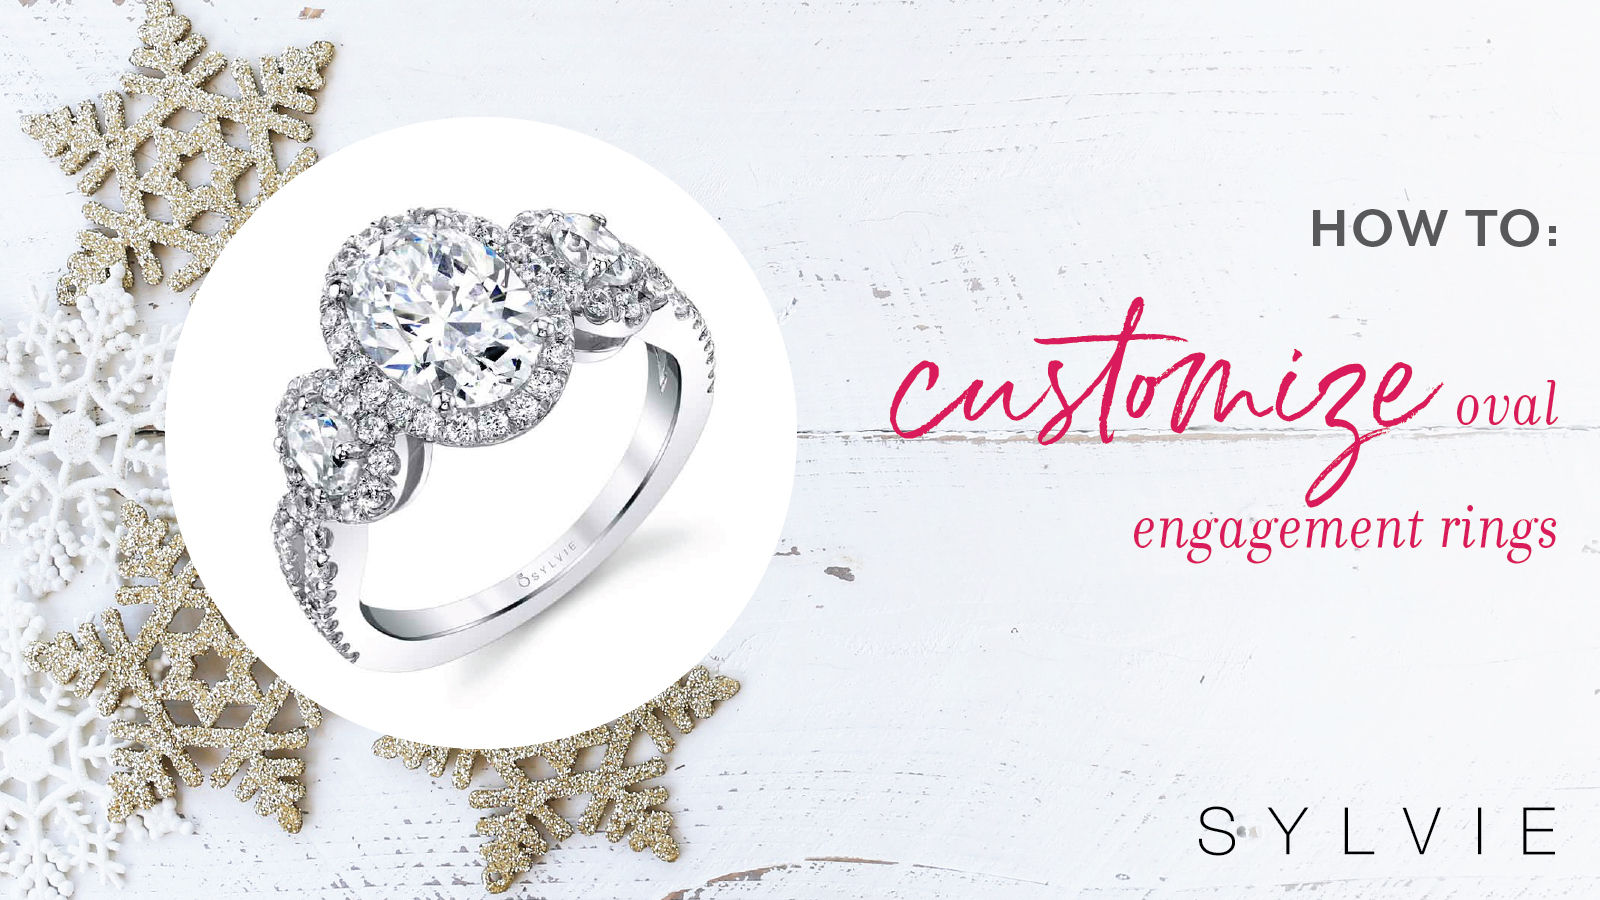 How to Customize Oval Engagement Rings